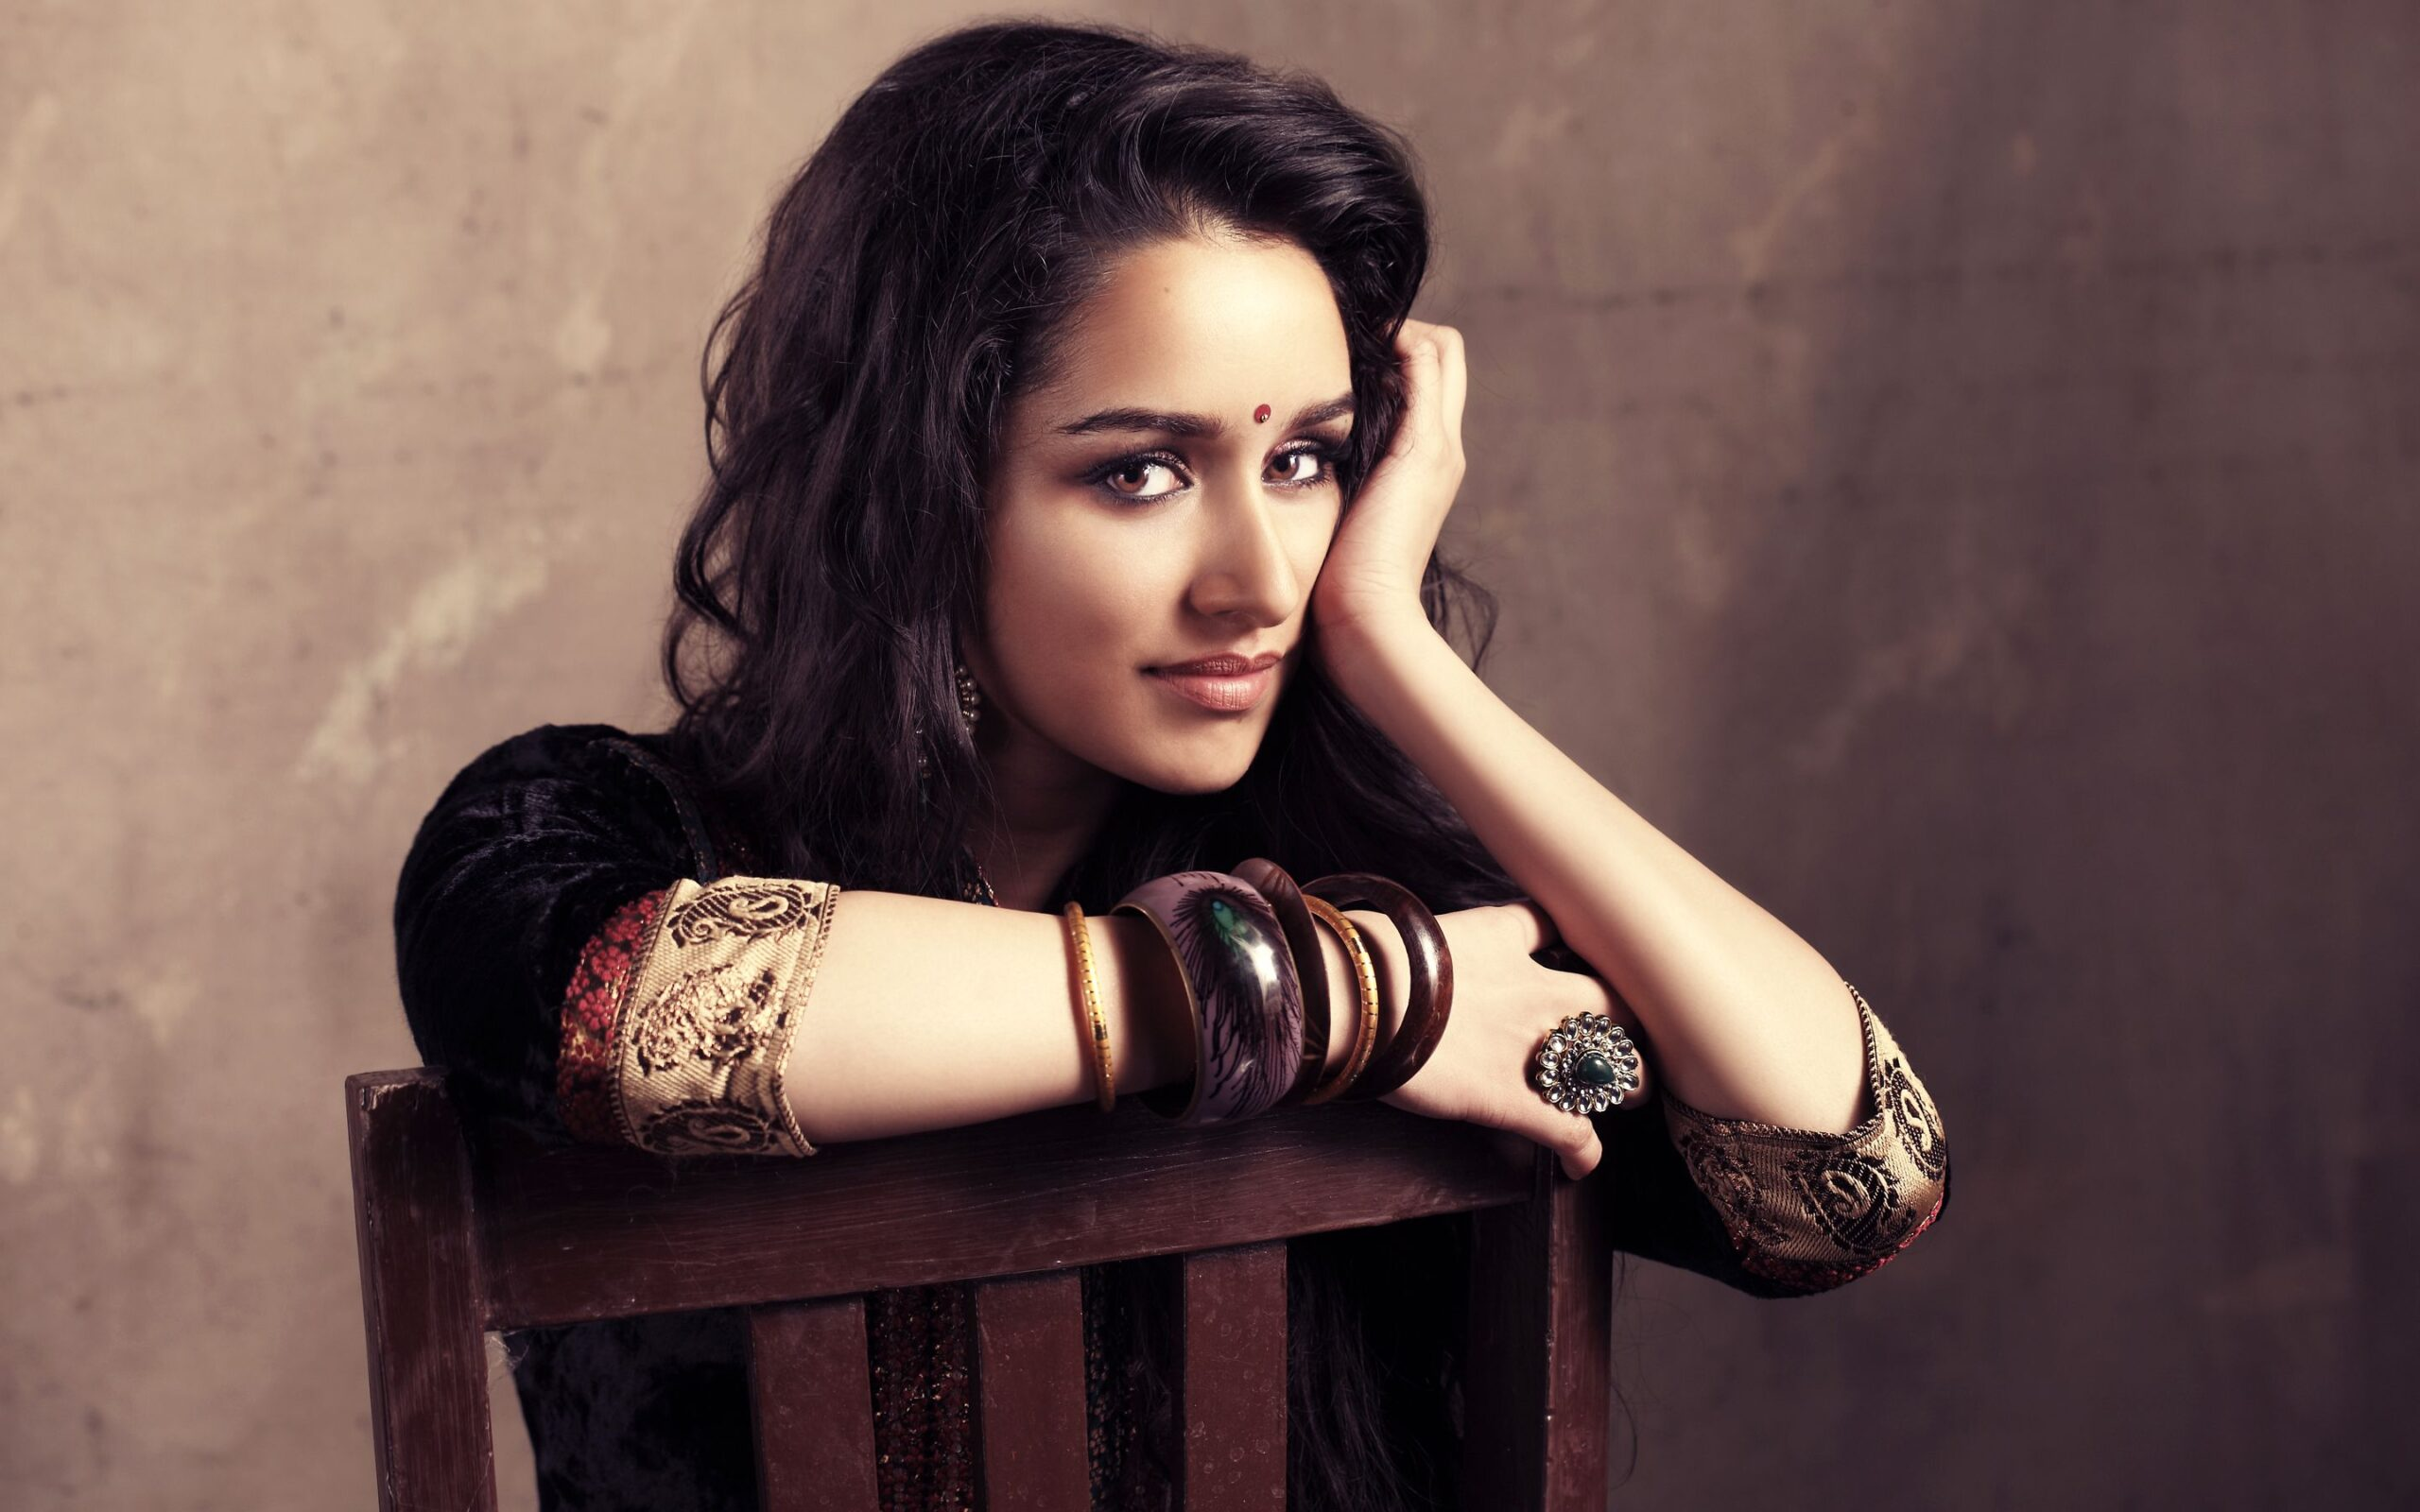 shraddha_kapoor_wallpaper_97338051